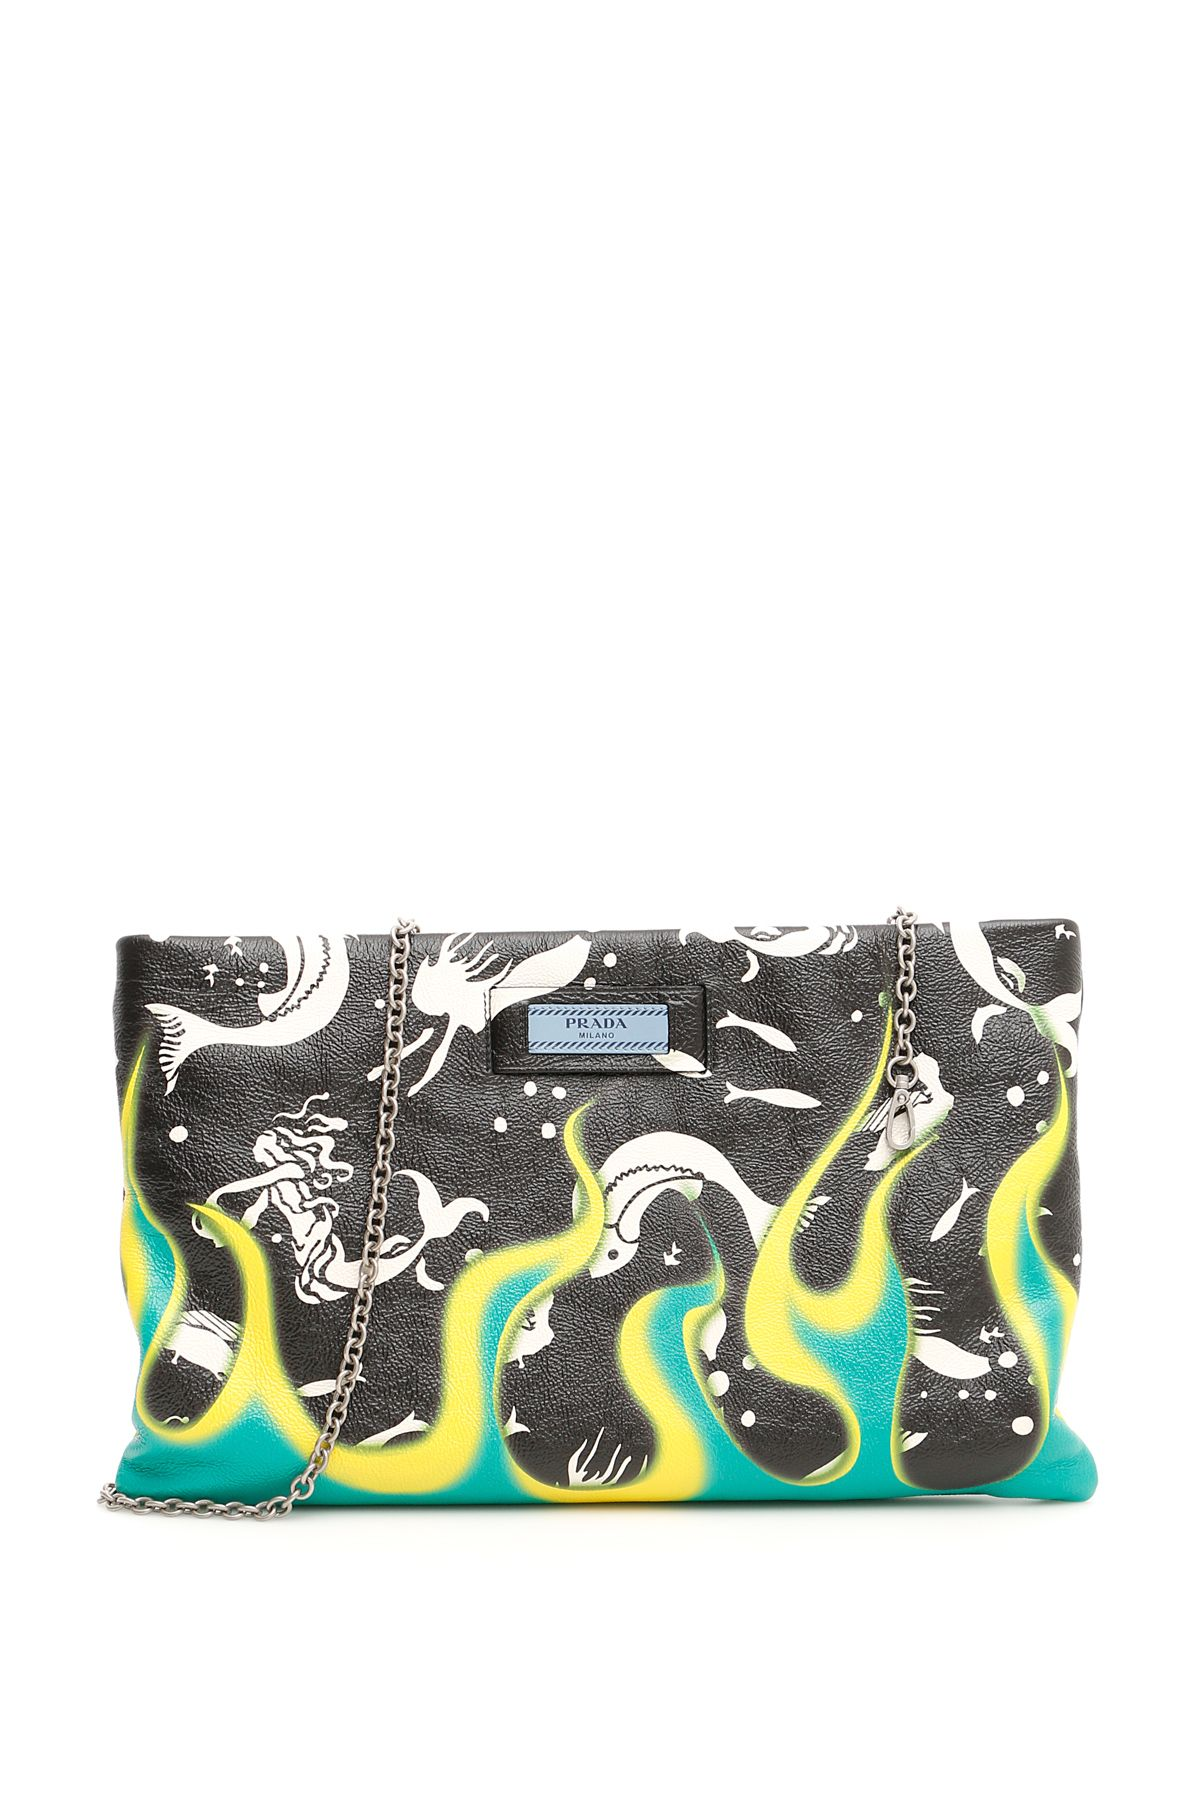 FLAMES AND SIRENS CLUTCH